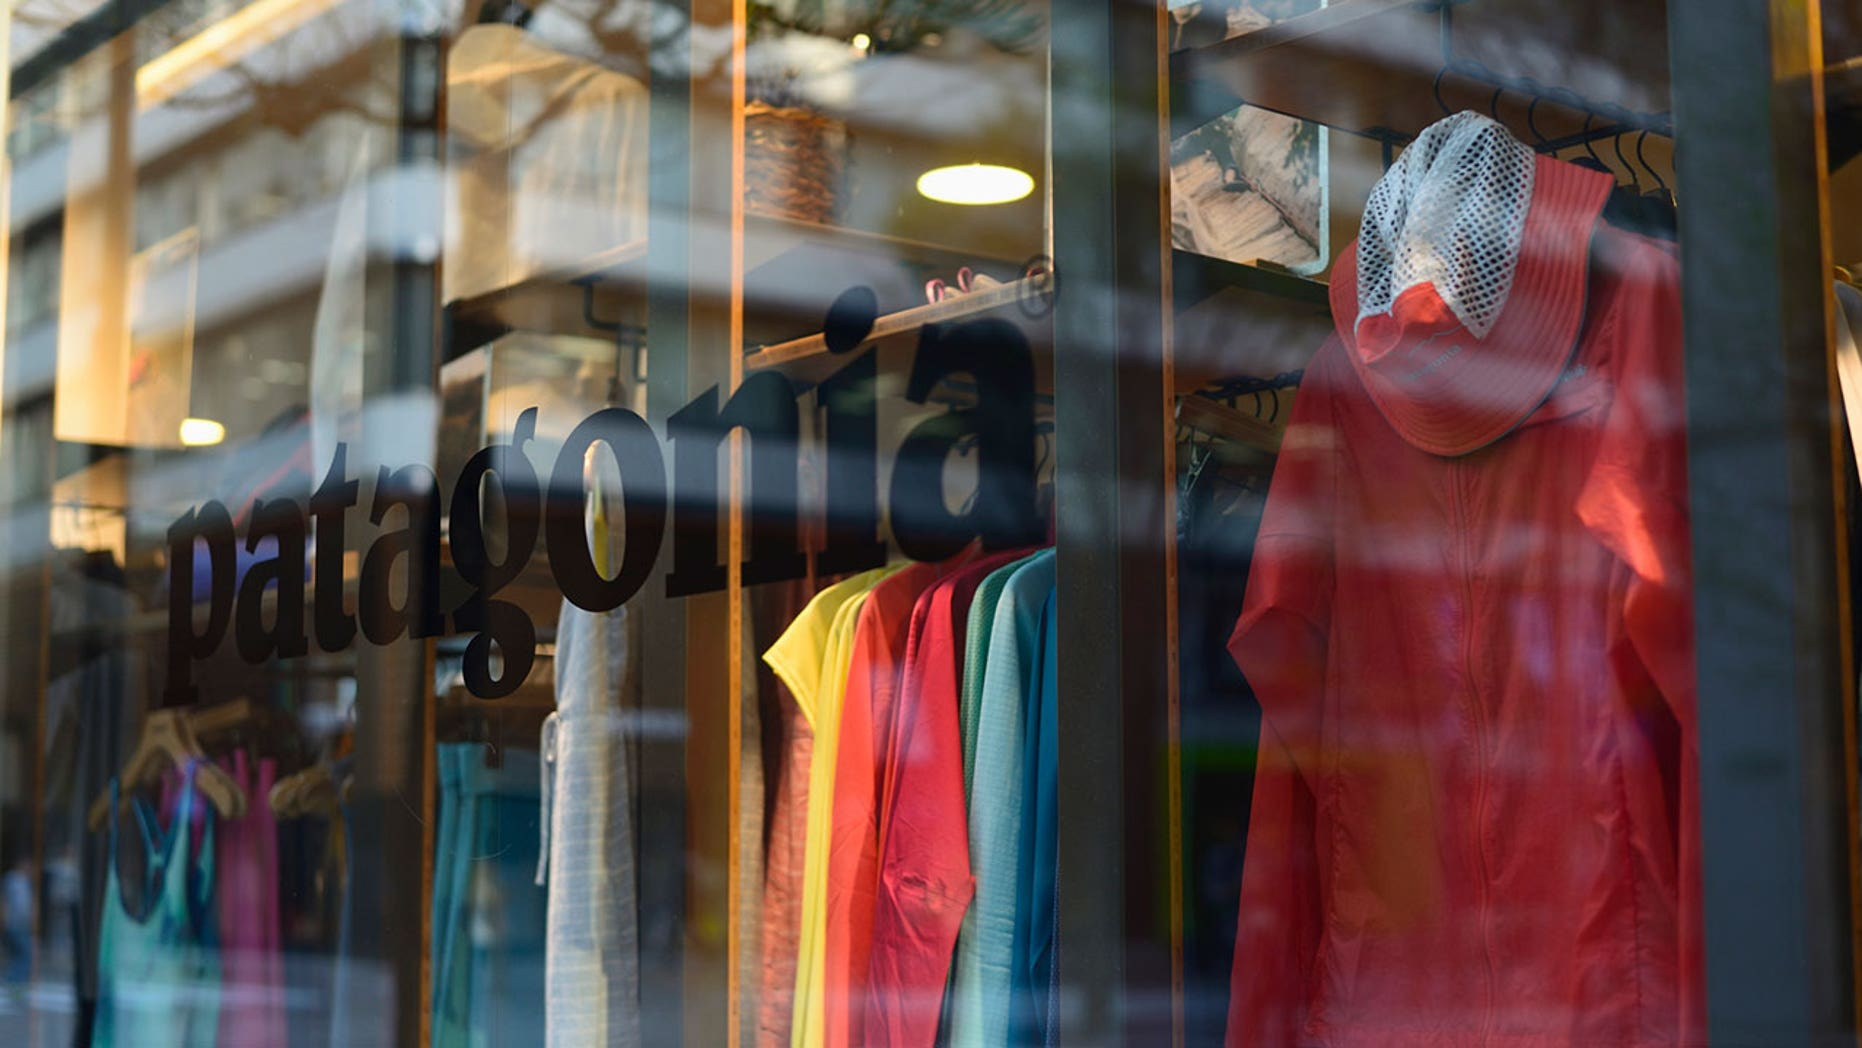 Recreational clothing retailer Patagonia has vowed to fight Trump's executive orders in court.